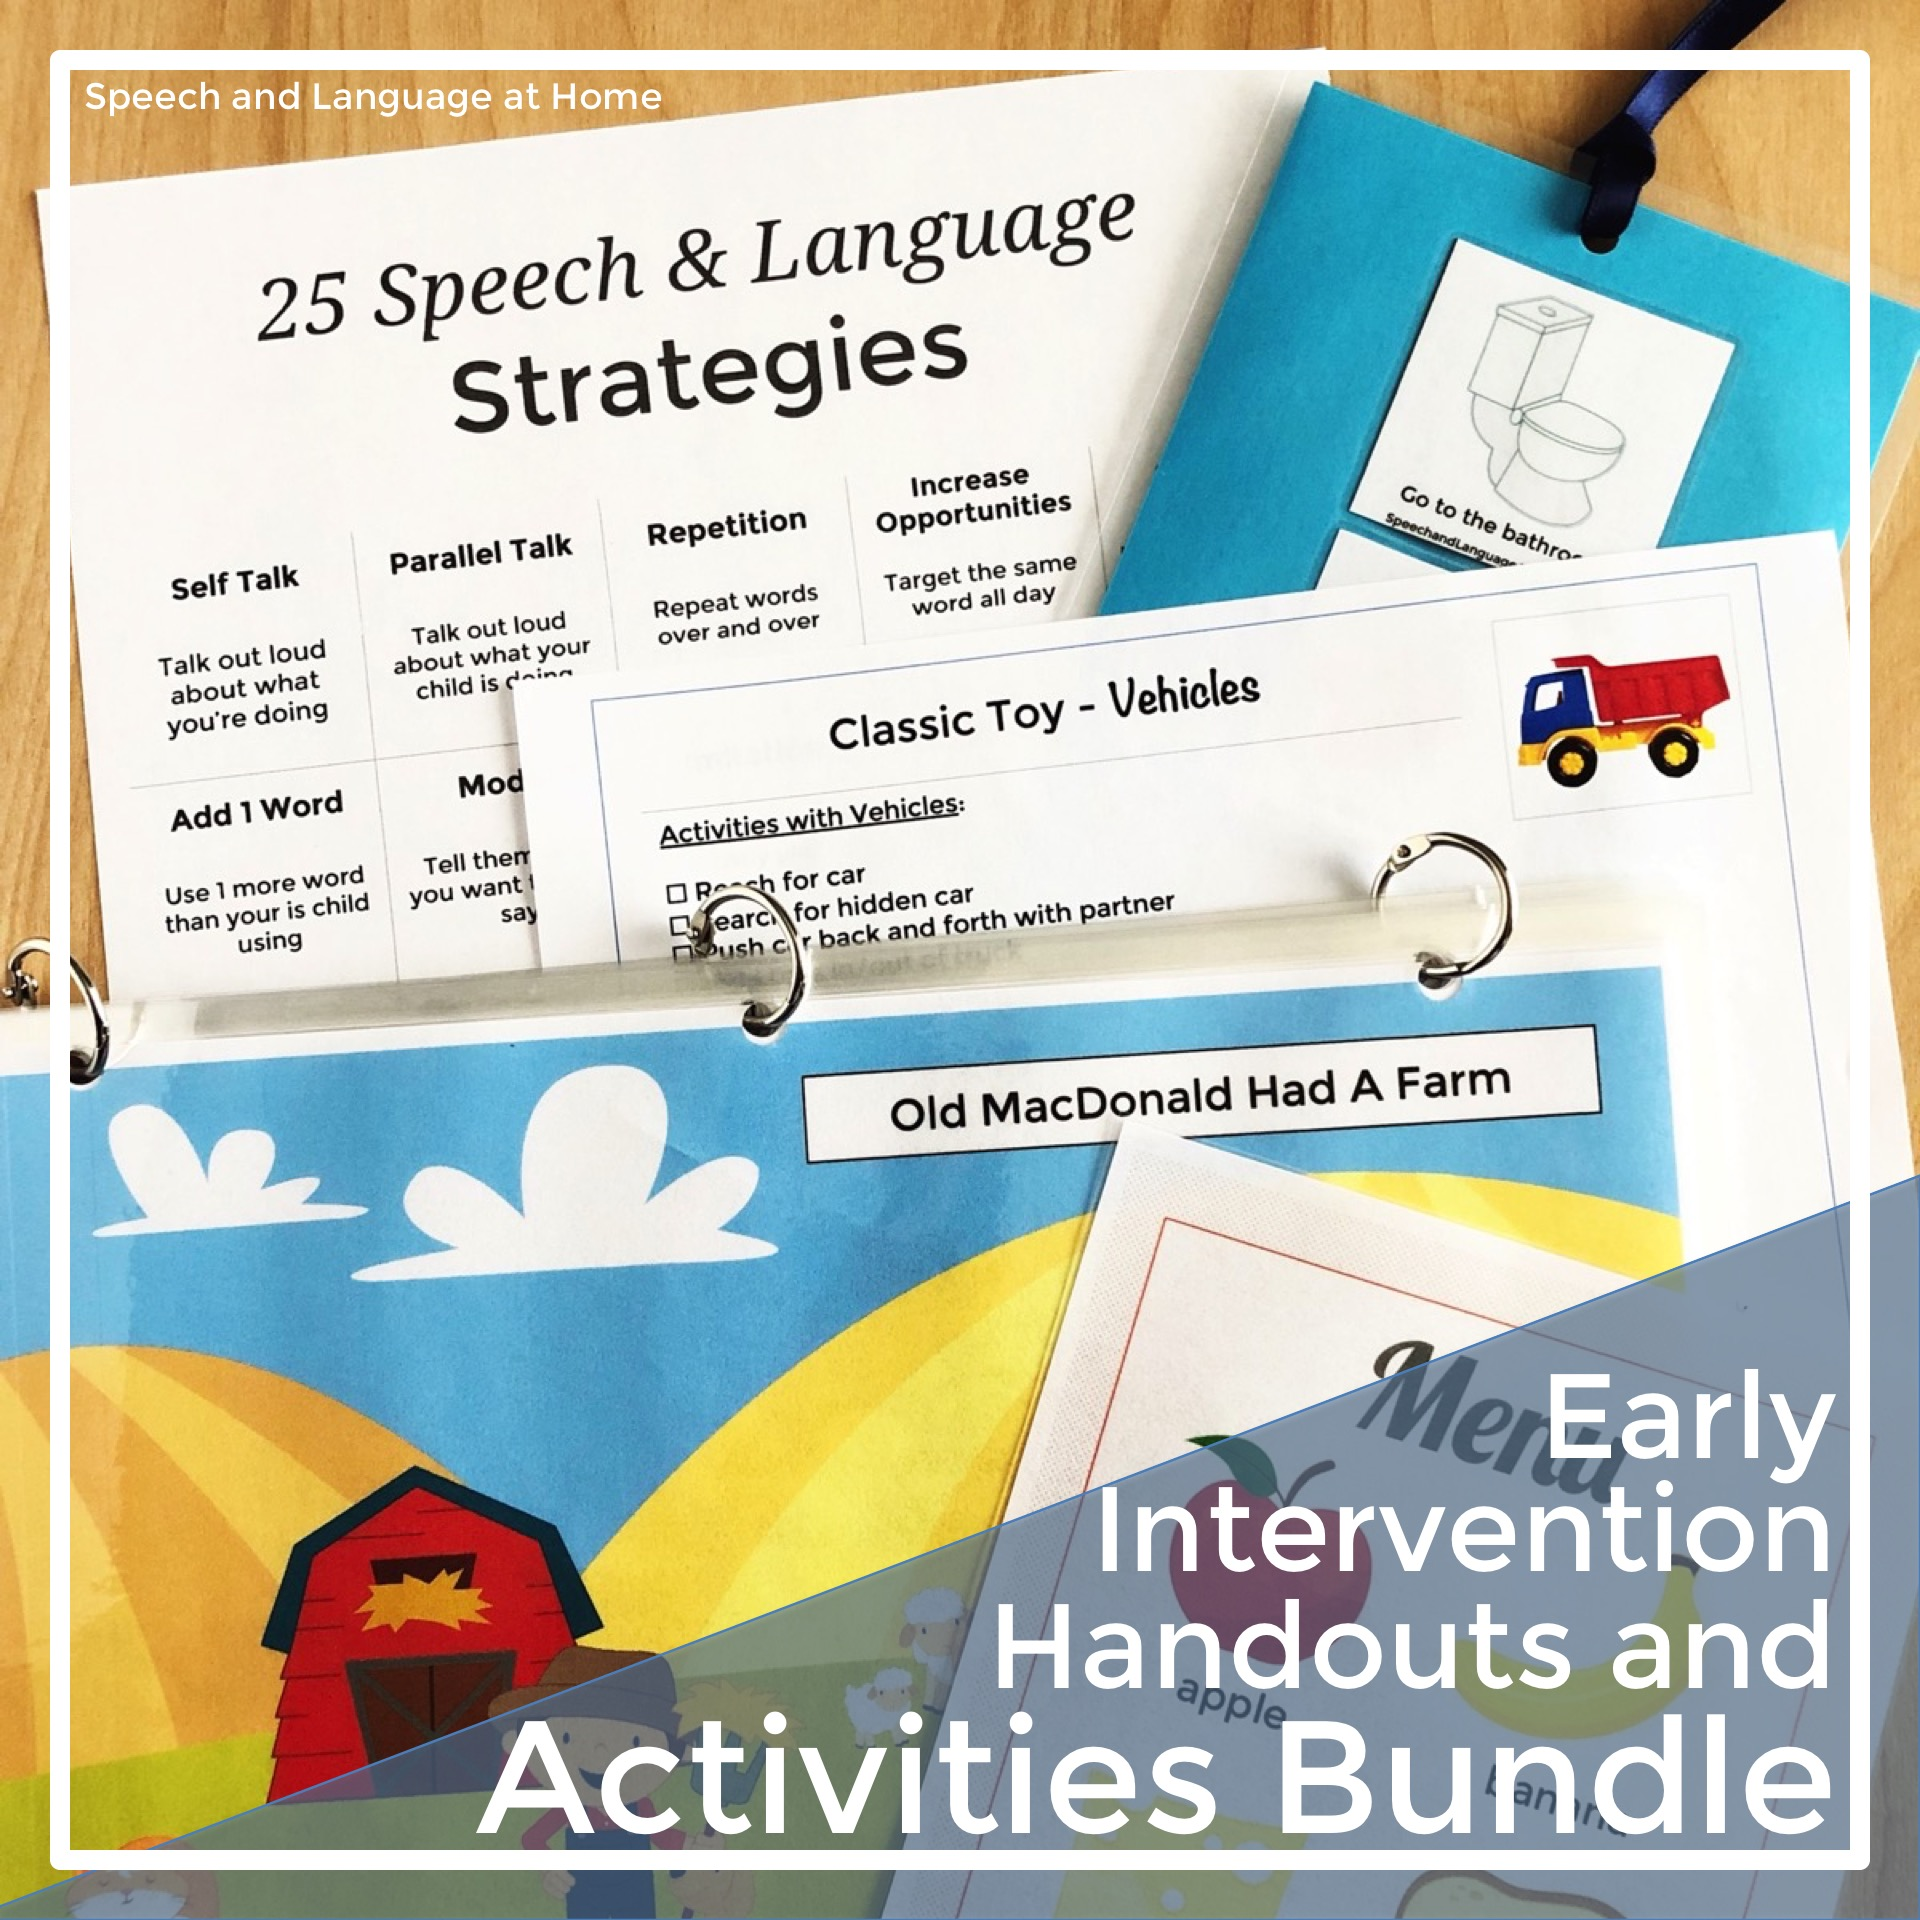 picture relating to Free Printable Speech Therapy Materials named Speech and Language at Dwelling